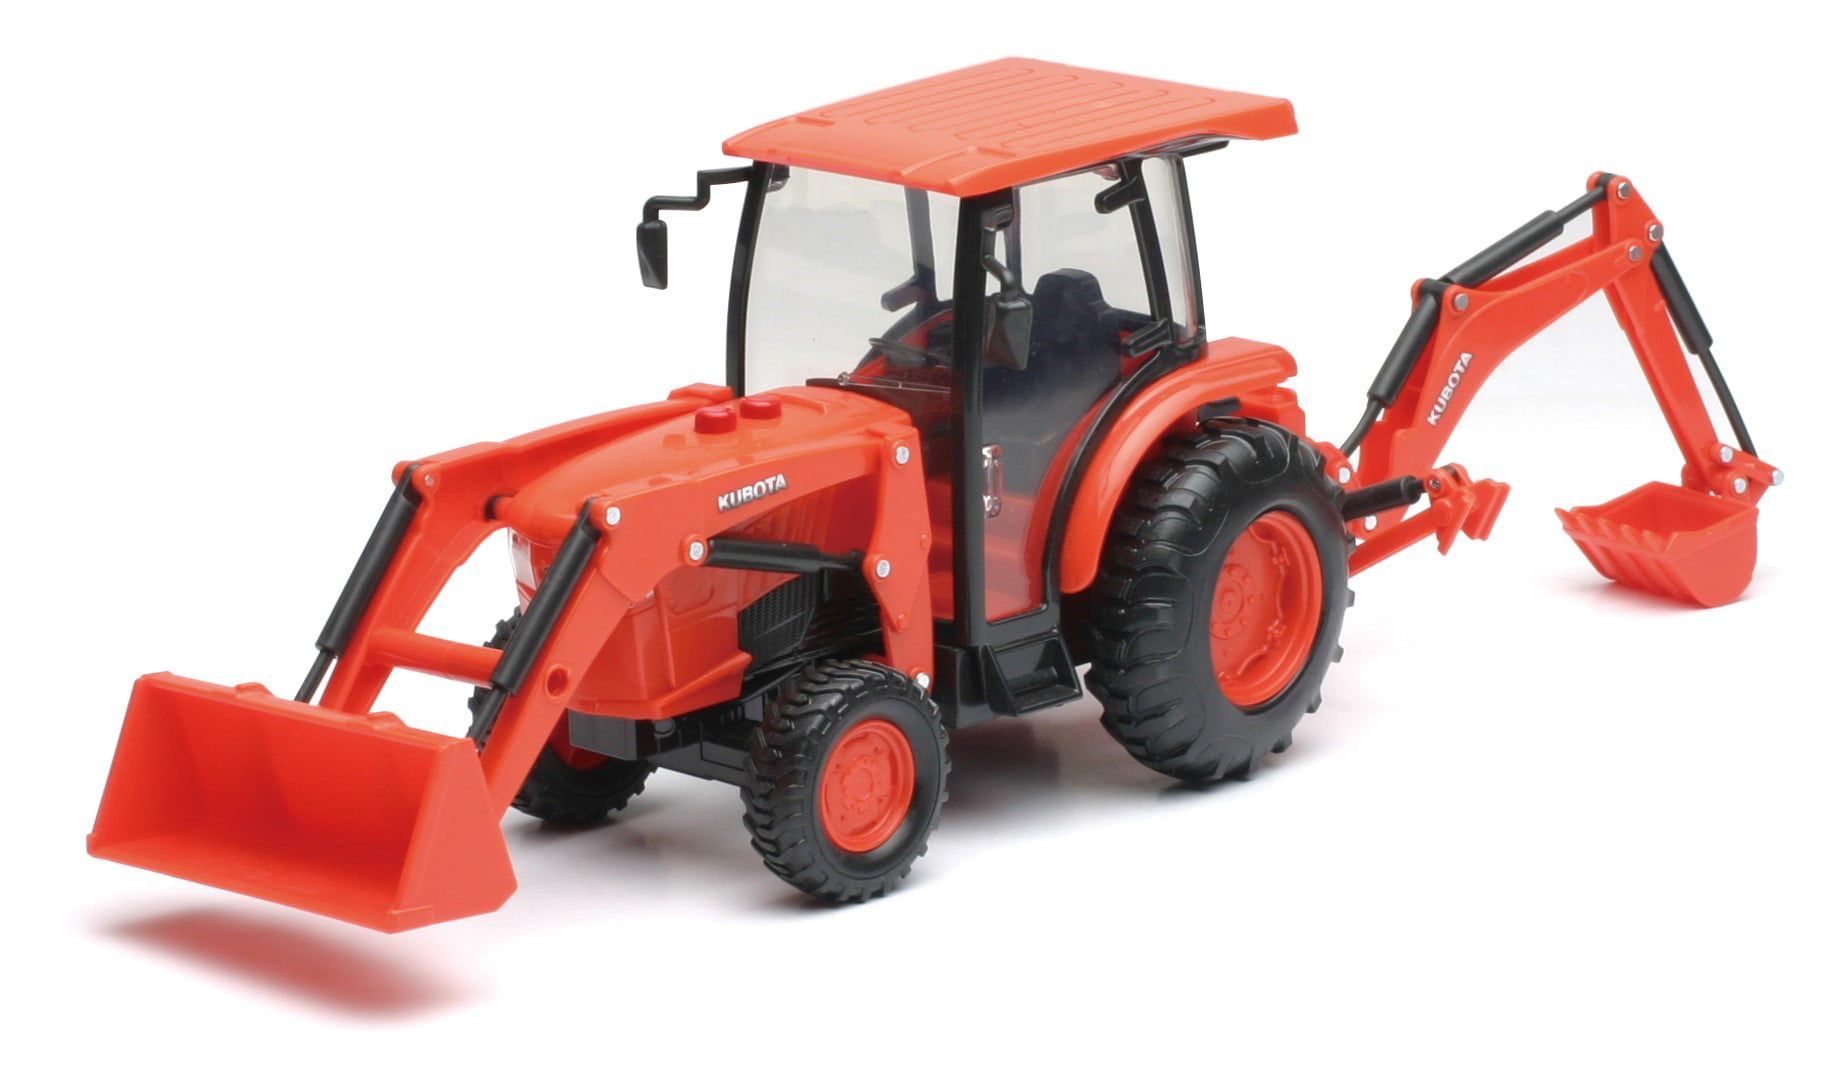 B O 1:18 Kubota Farm Tractor W Loader And Backhoe(L&S) by New-ray Toys